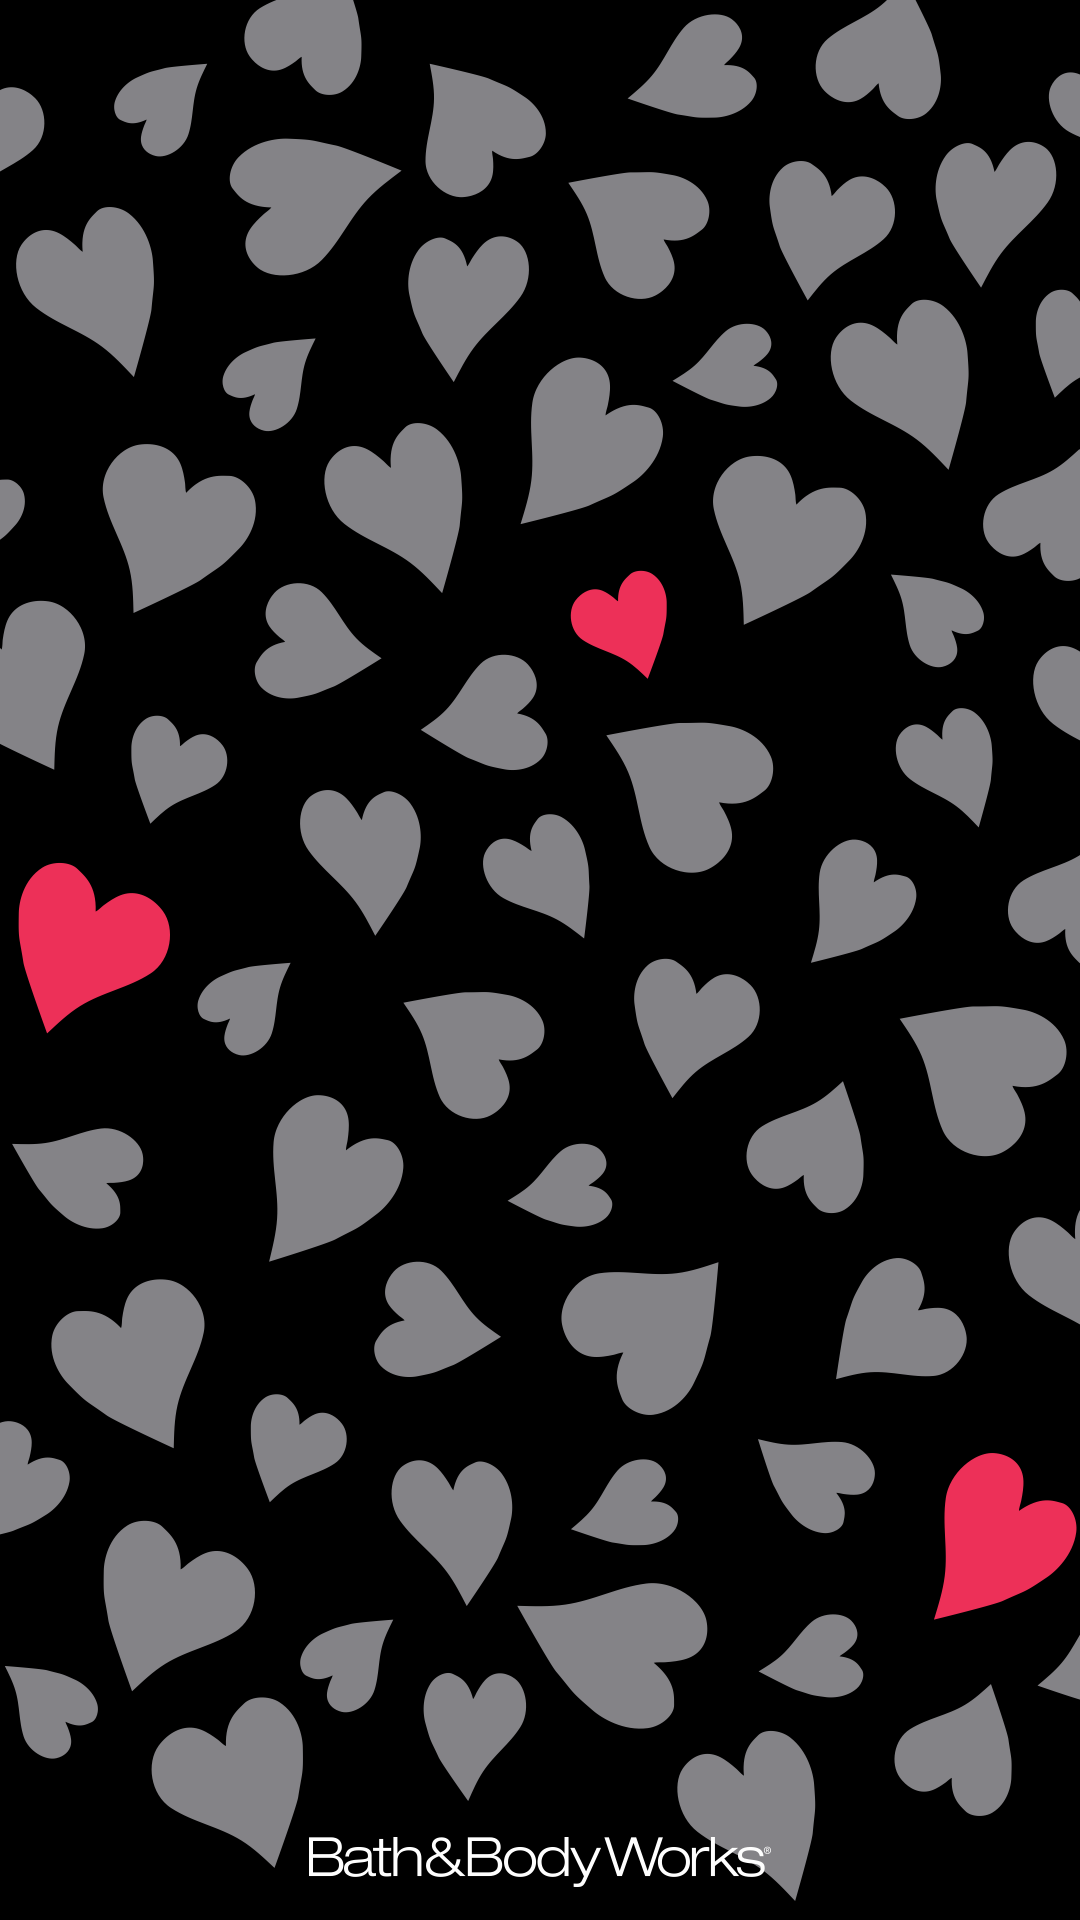 Black Heart Iphone Wallpaper Heart Iphone Wallpaper Heart Wallpaper Romantic Wallpaper